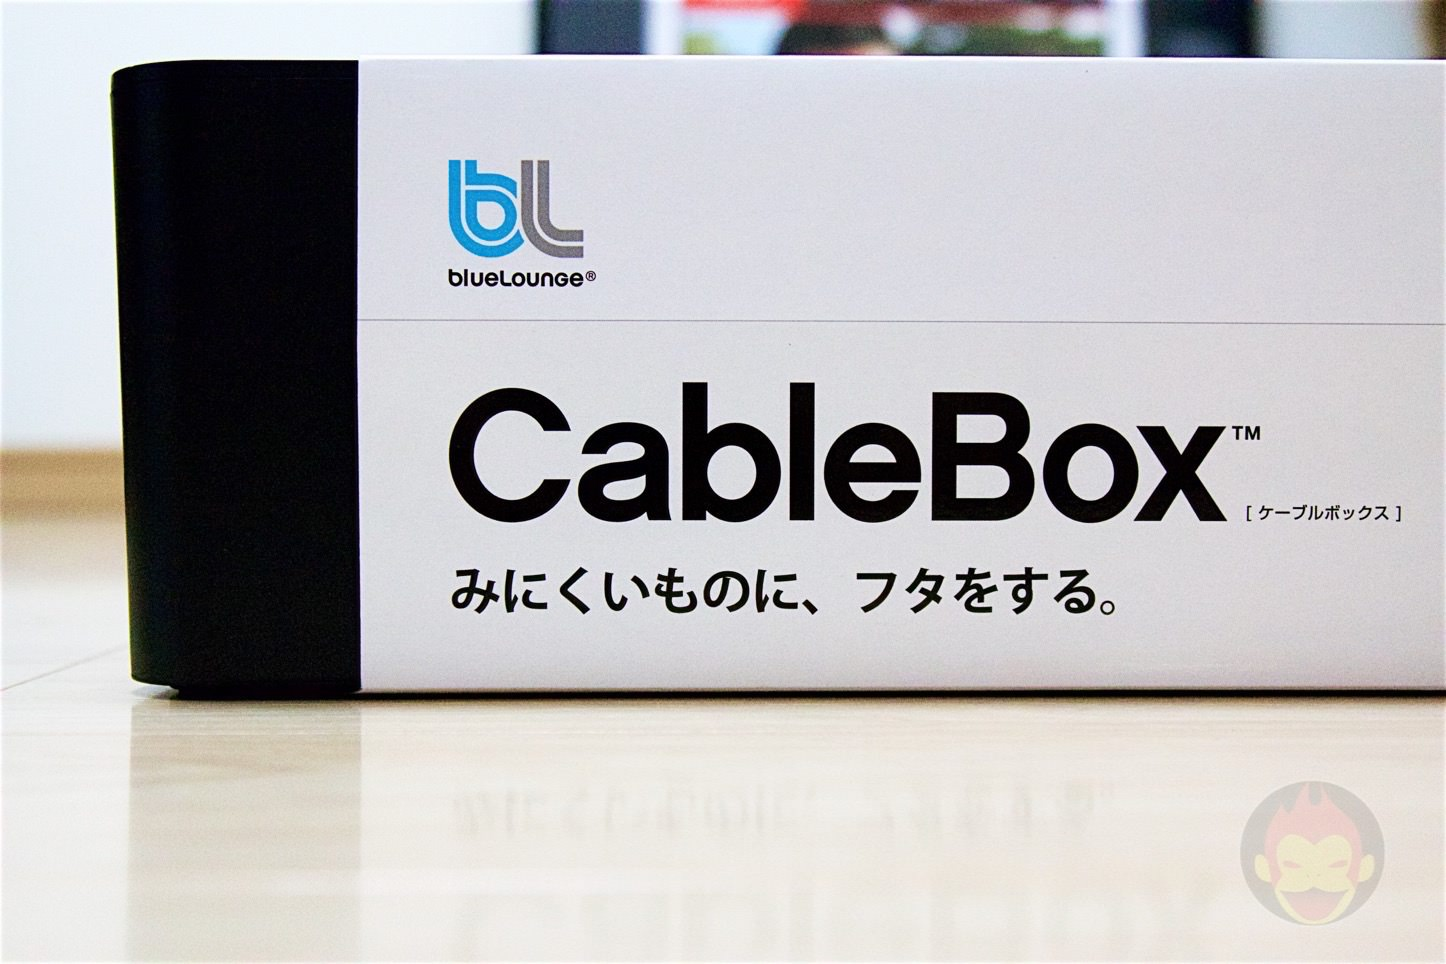 Bluelounge-The-CableBox-01.jpg